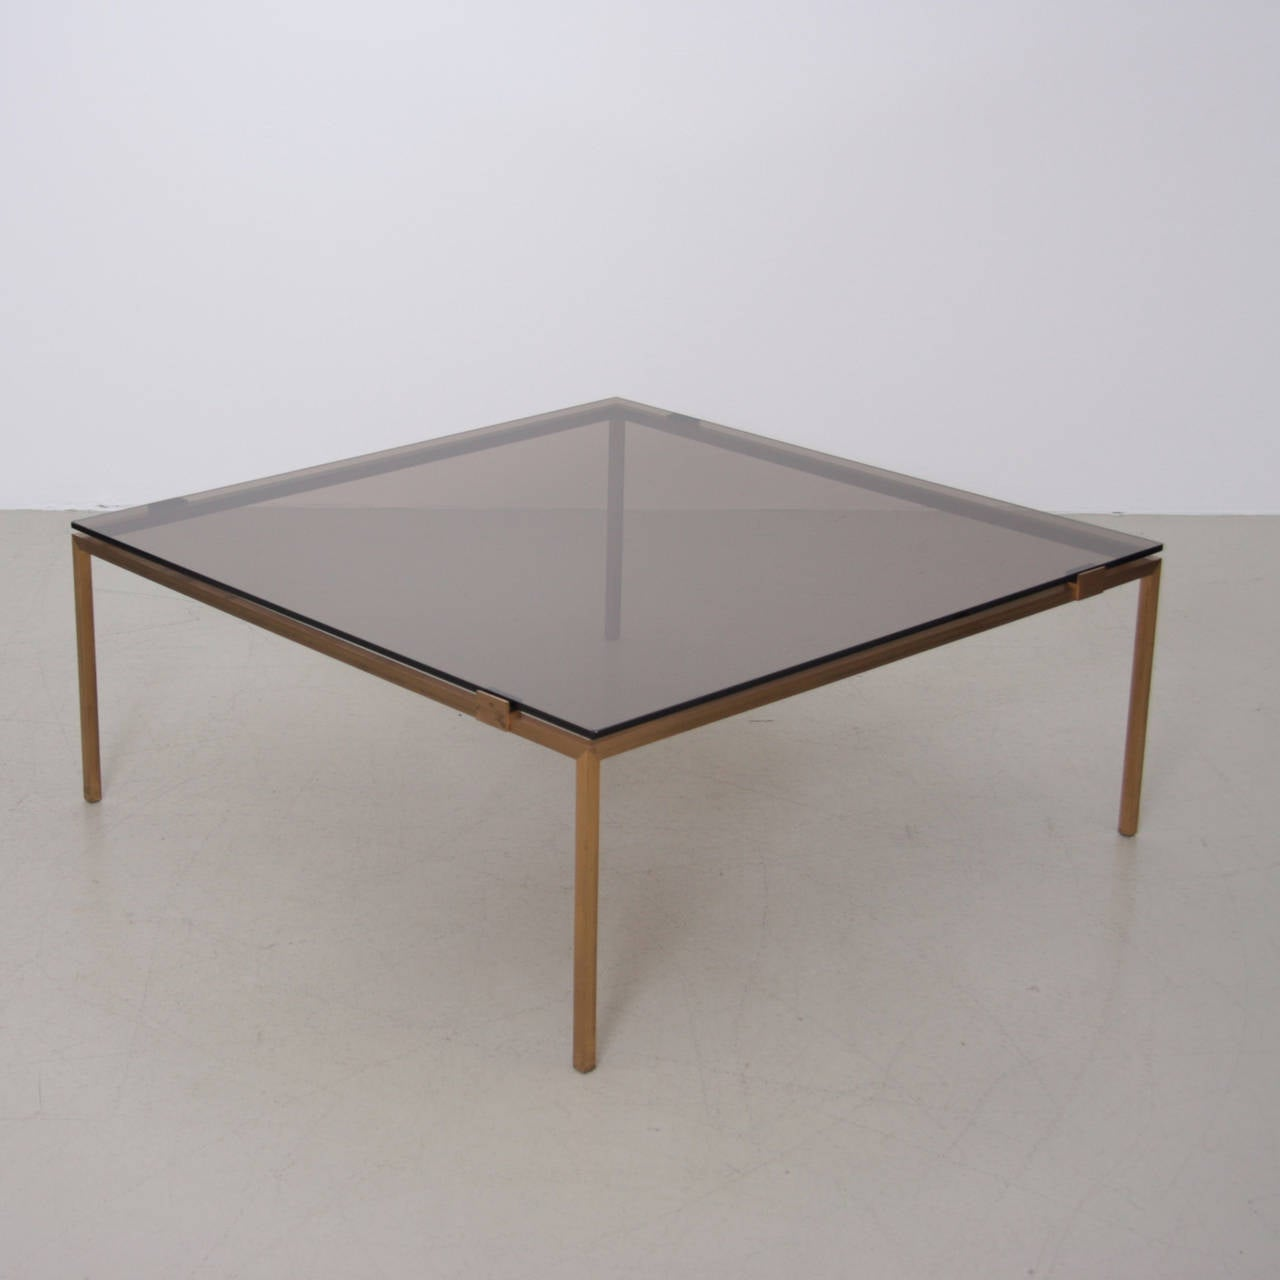 Elegant Brass And Glass Coffee Table In The Manner Of Maison Jansen At 1stdibs